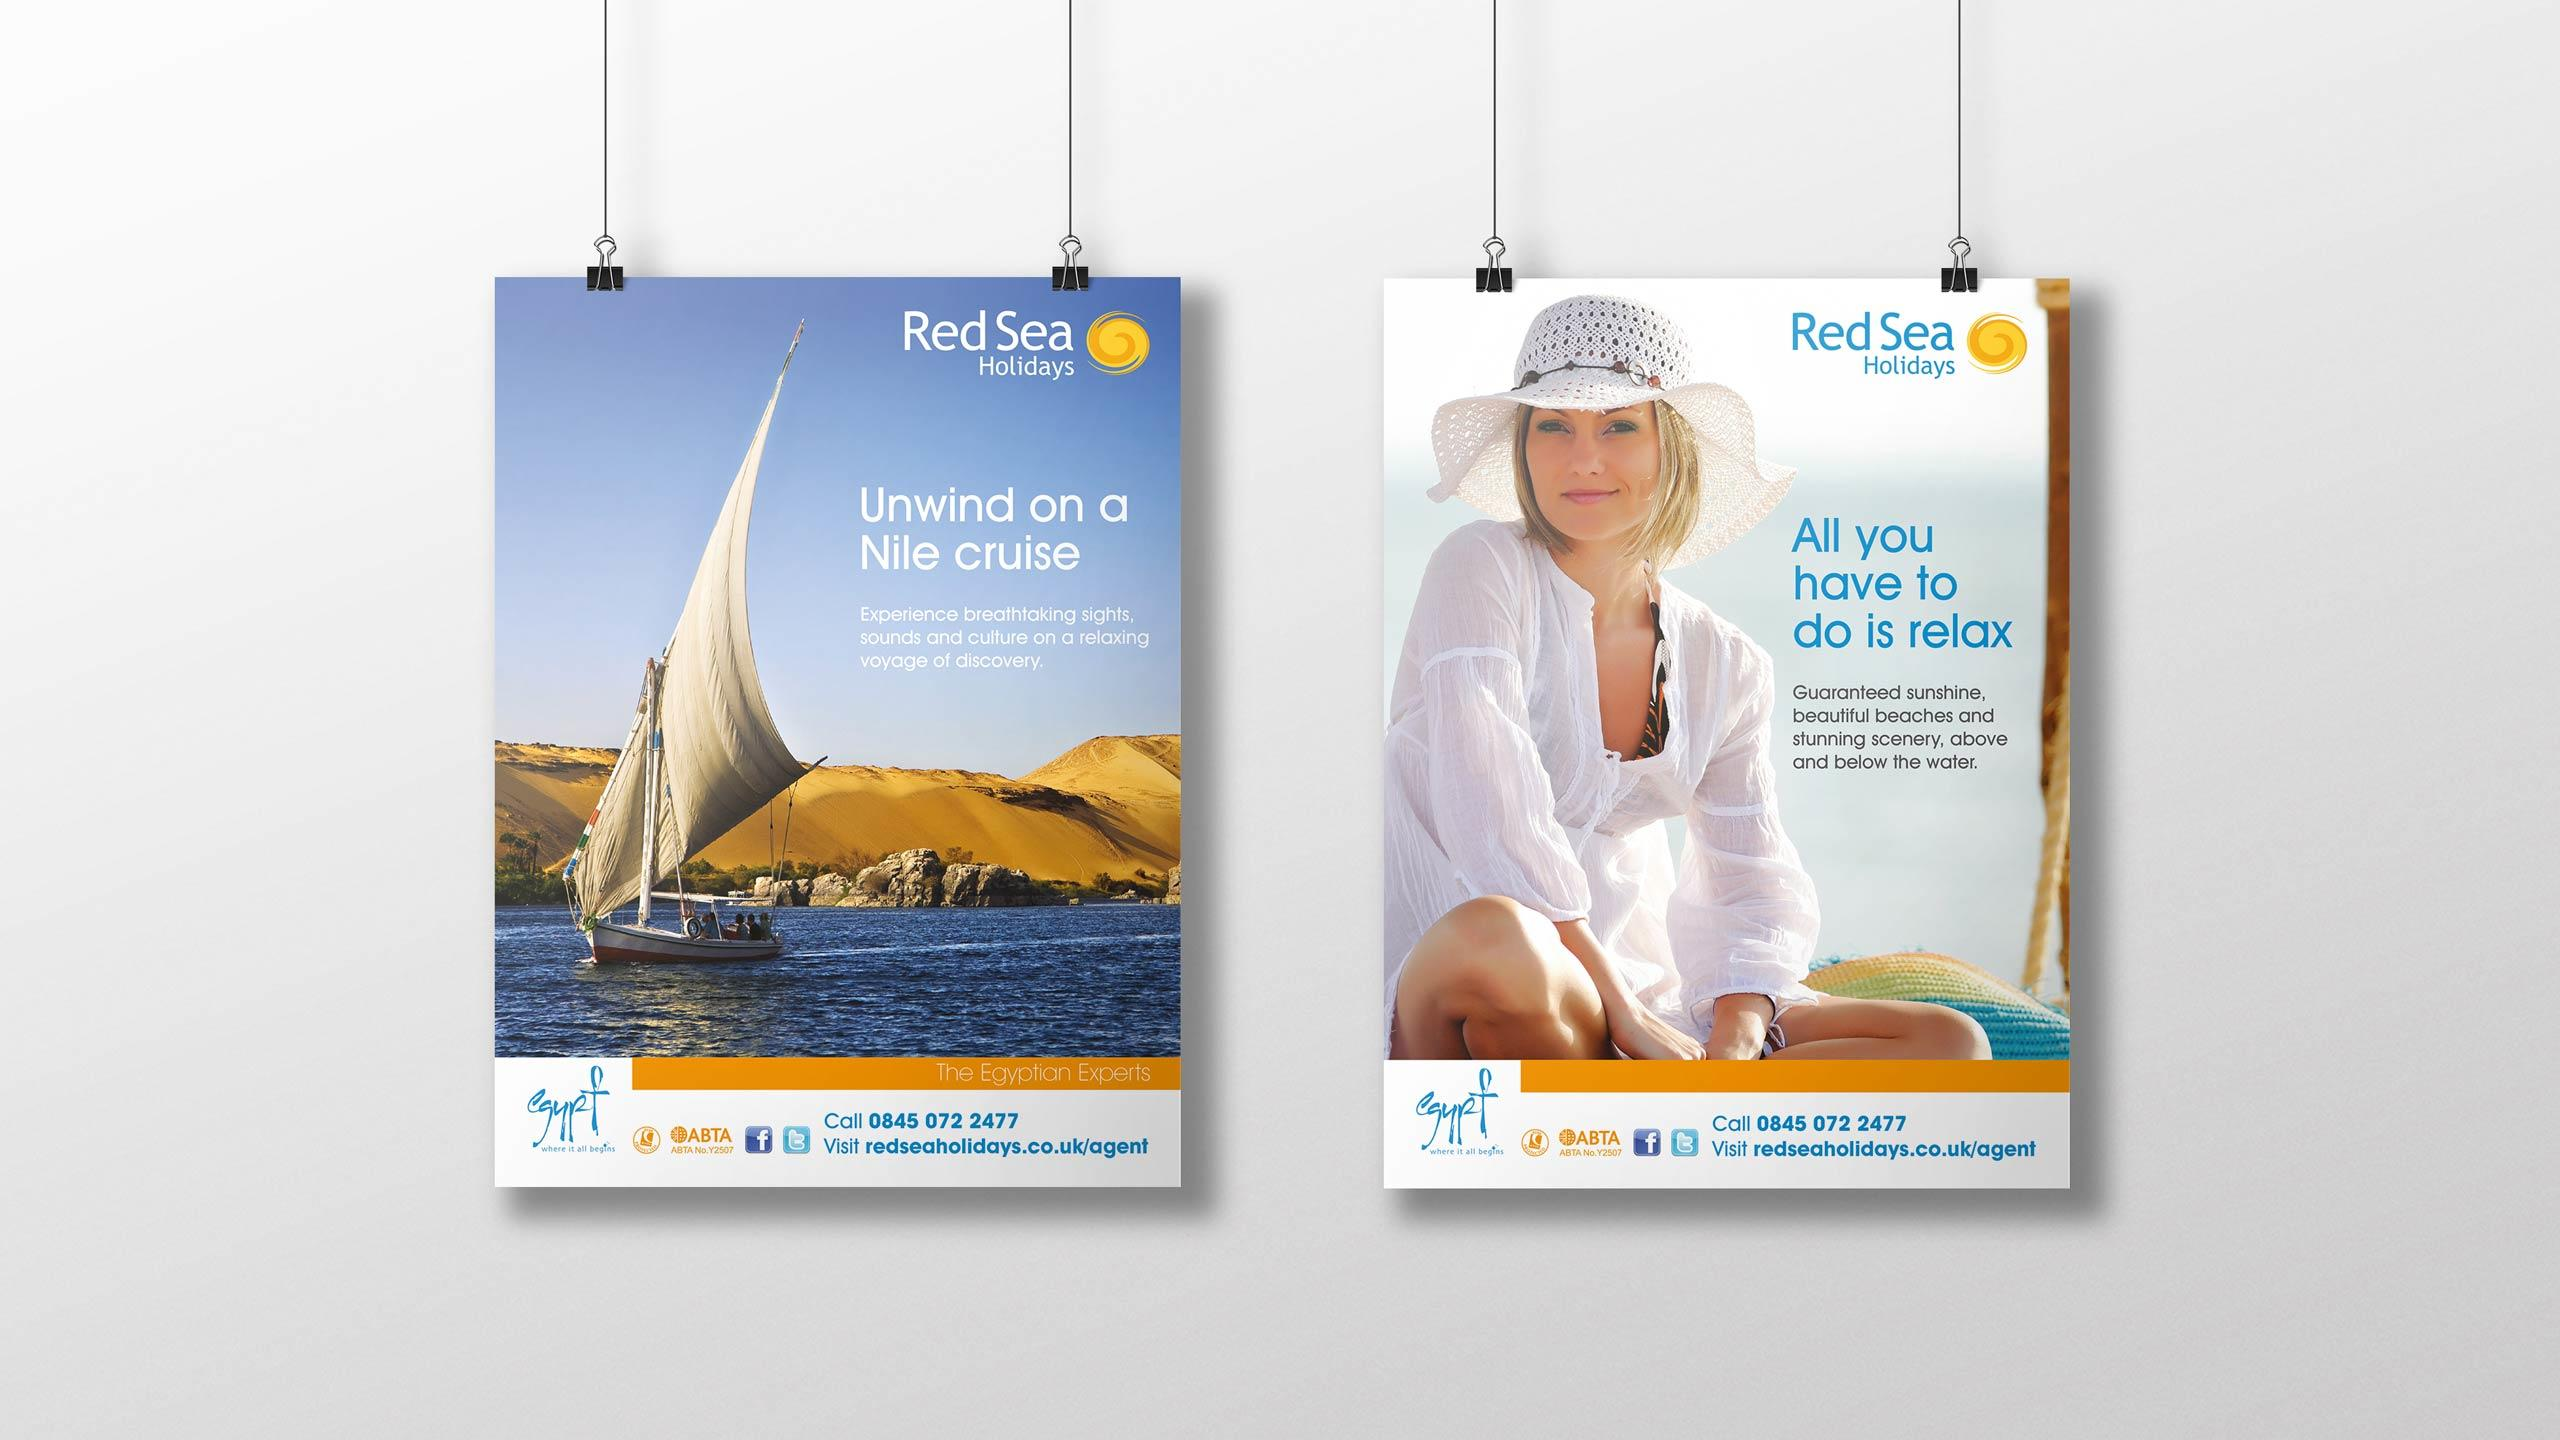 tour operator branding posters sail boat woman hat red sea holidays